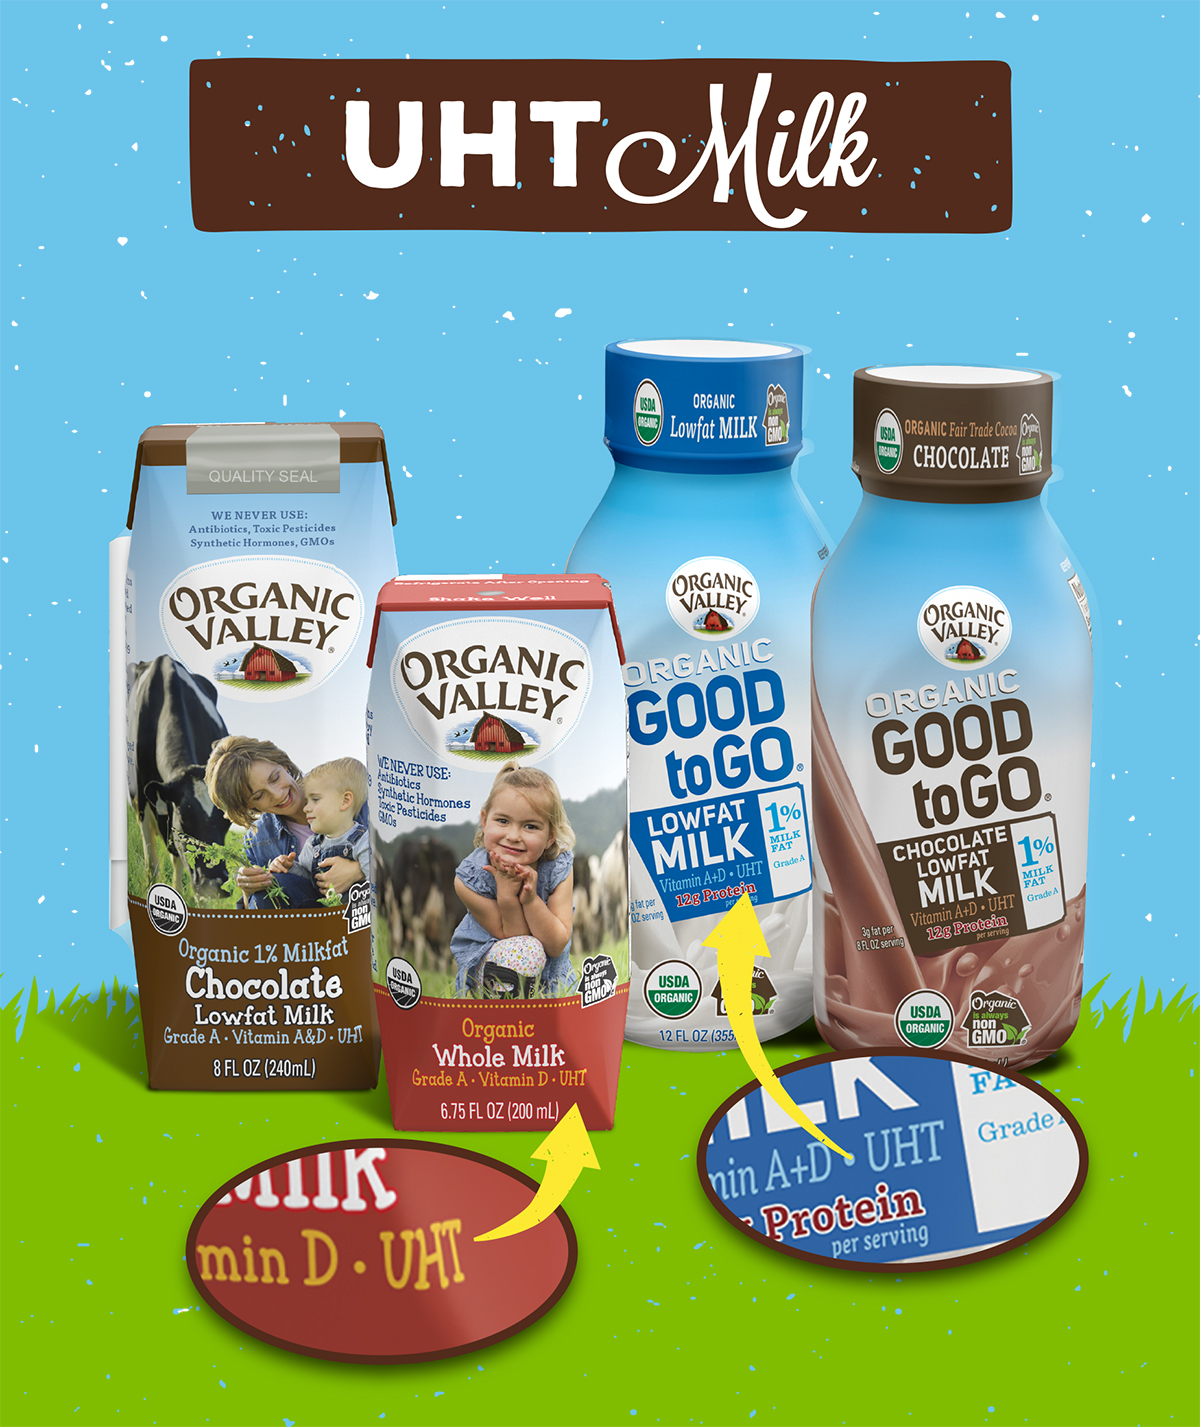 Organic Valley single serve milk cartons with arrows pointing to where it says UHT on the package.